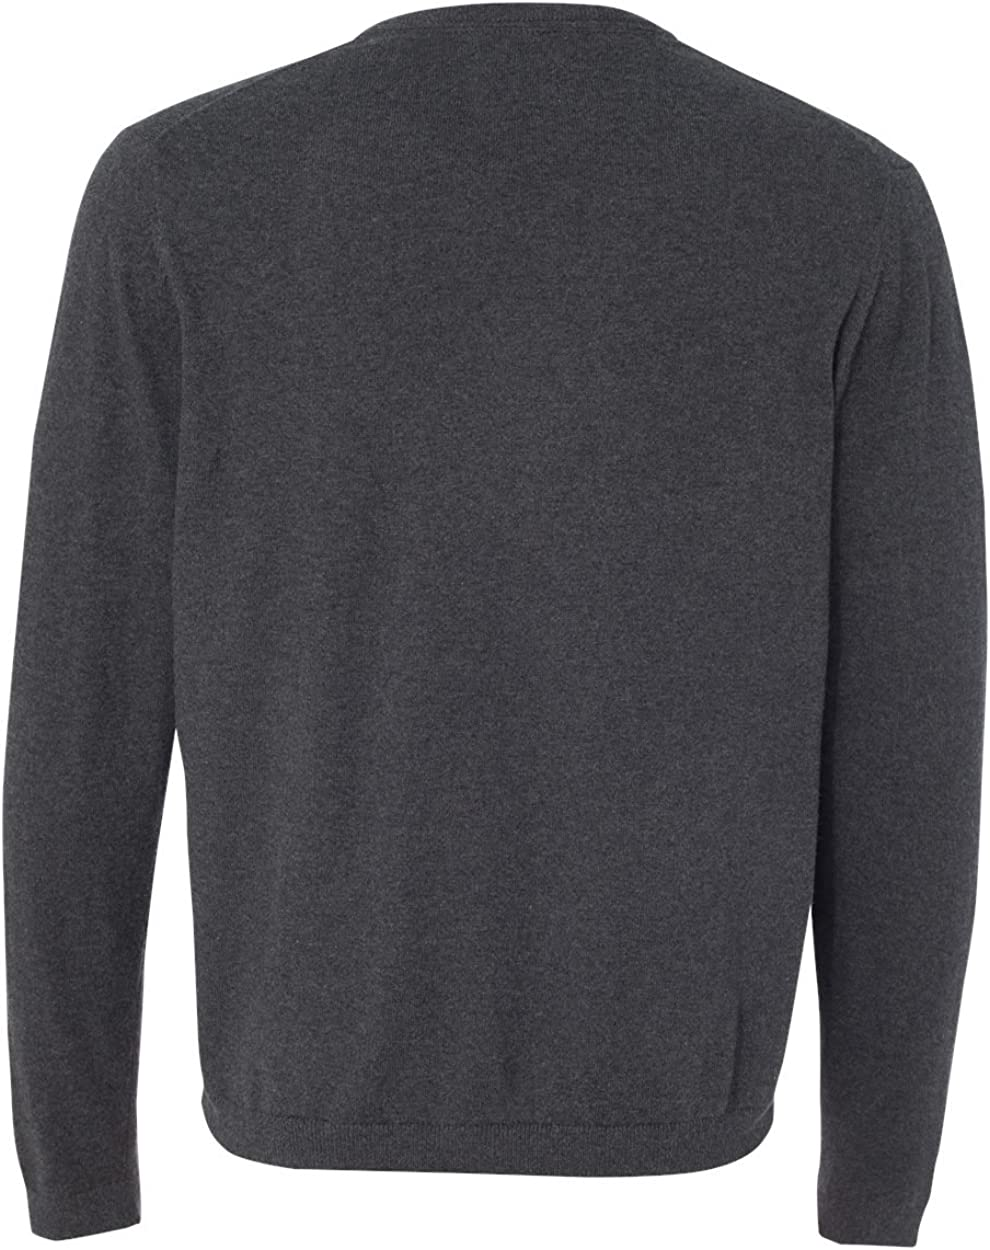 Weatherproof Mens Vintage Cotton Cashmere V Neck Sweater (151377)